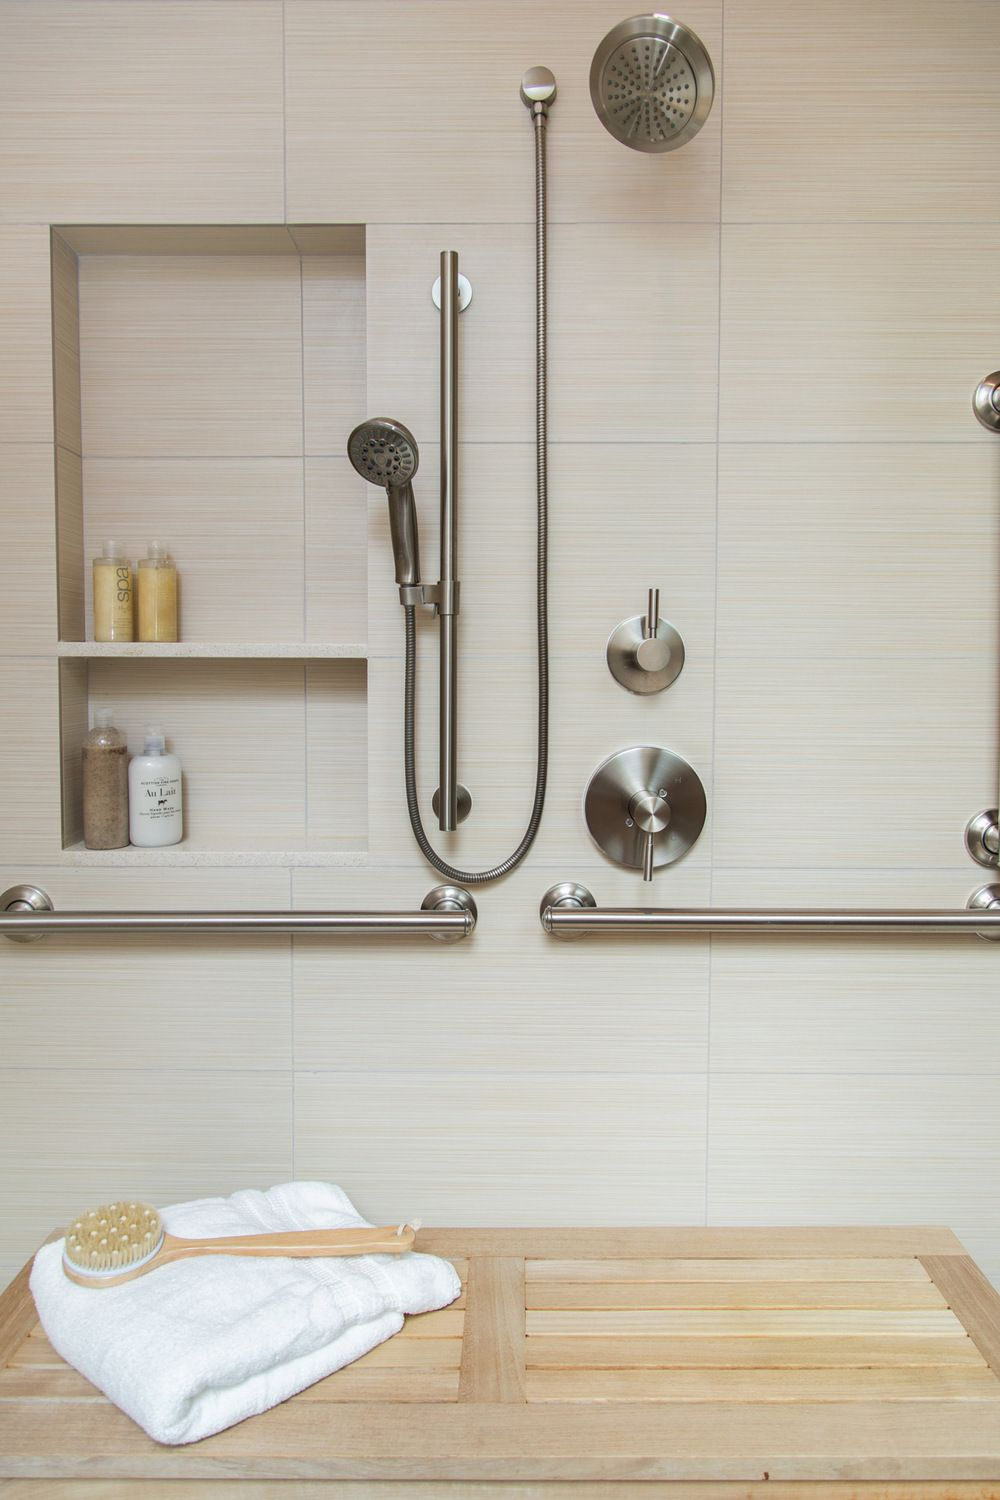 BEFORE & AFTER: An Accessible Master Bathroom Is Created Using ...